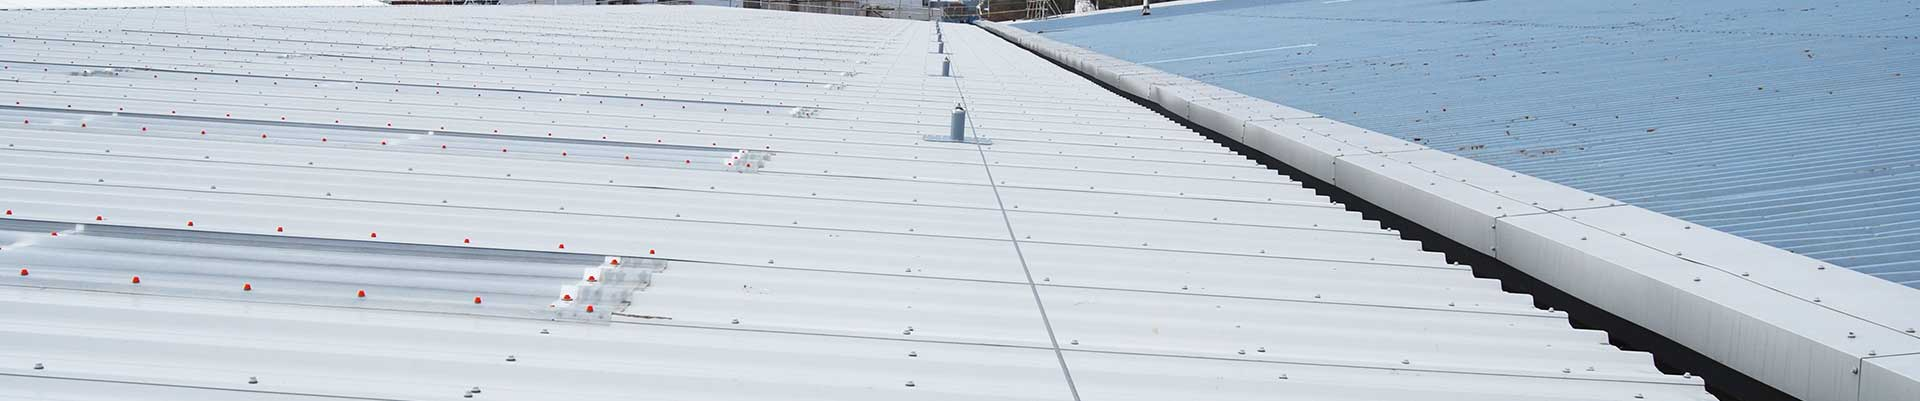 Steel Roof Safety Lines